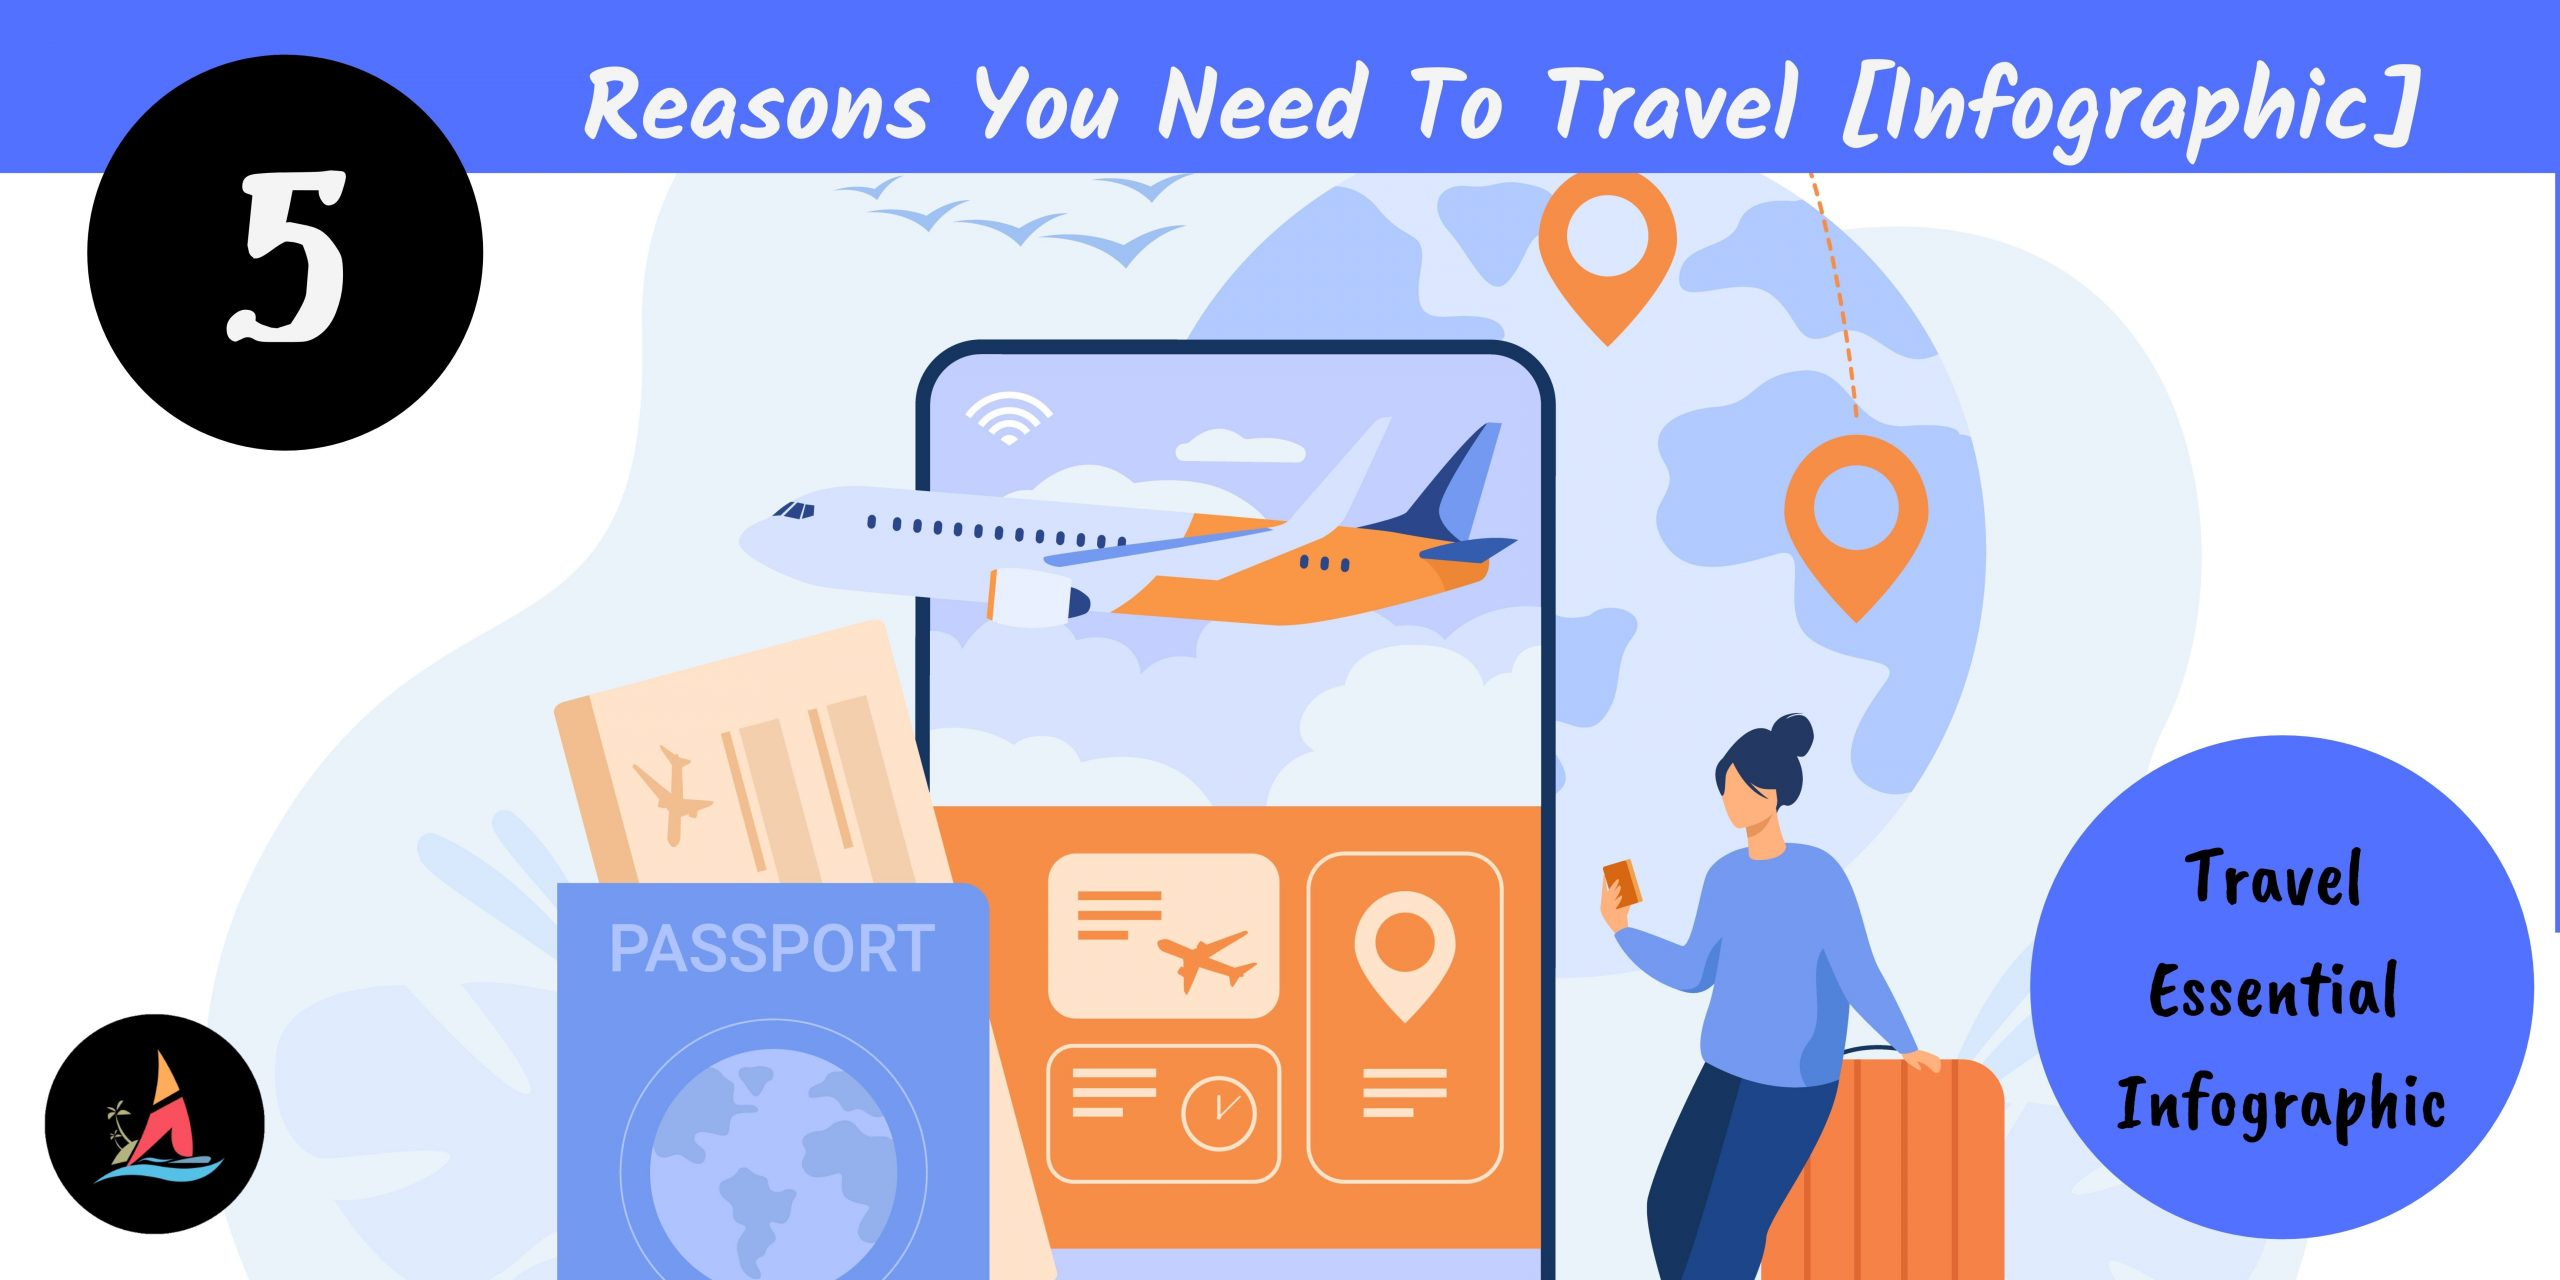 5 Reasons You Need To Travel